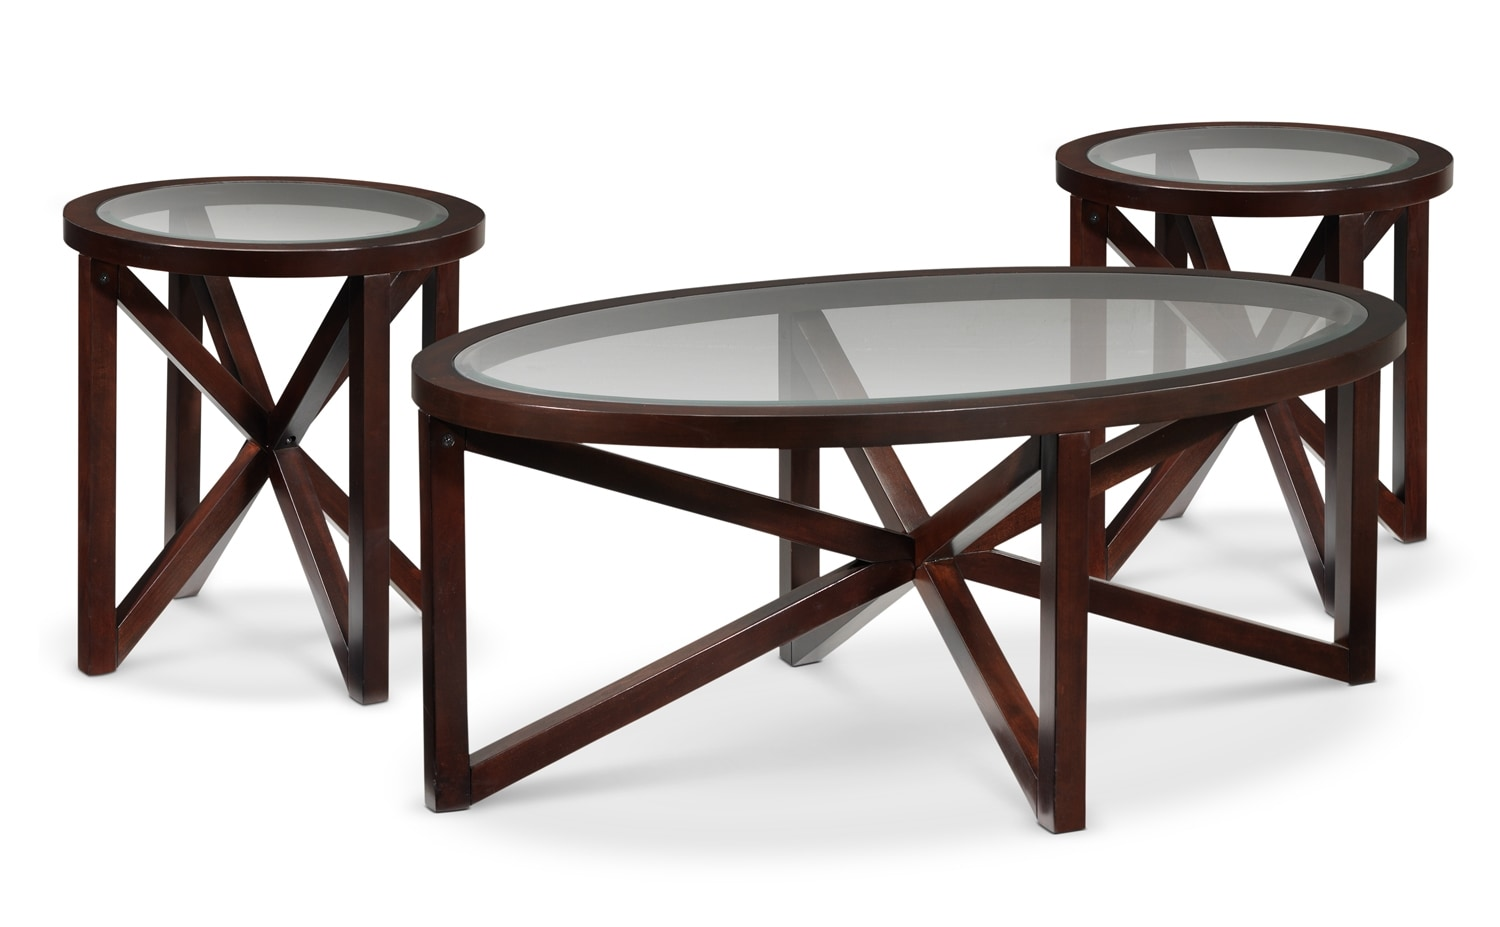 Asterix Coffee Table and Two End Tables - Espresso